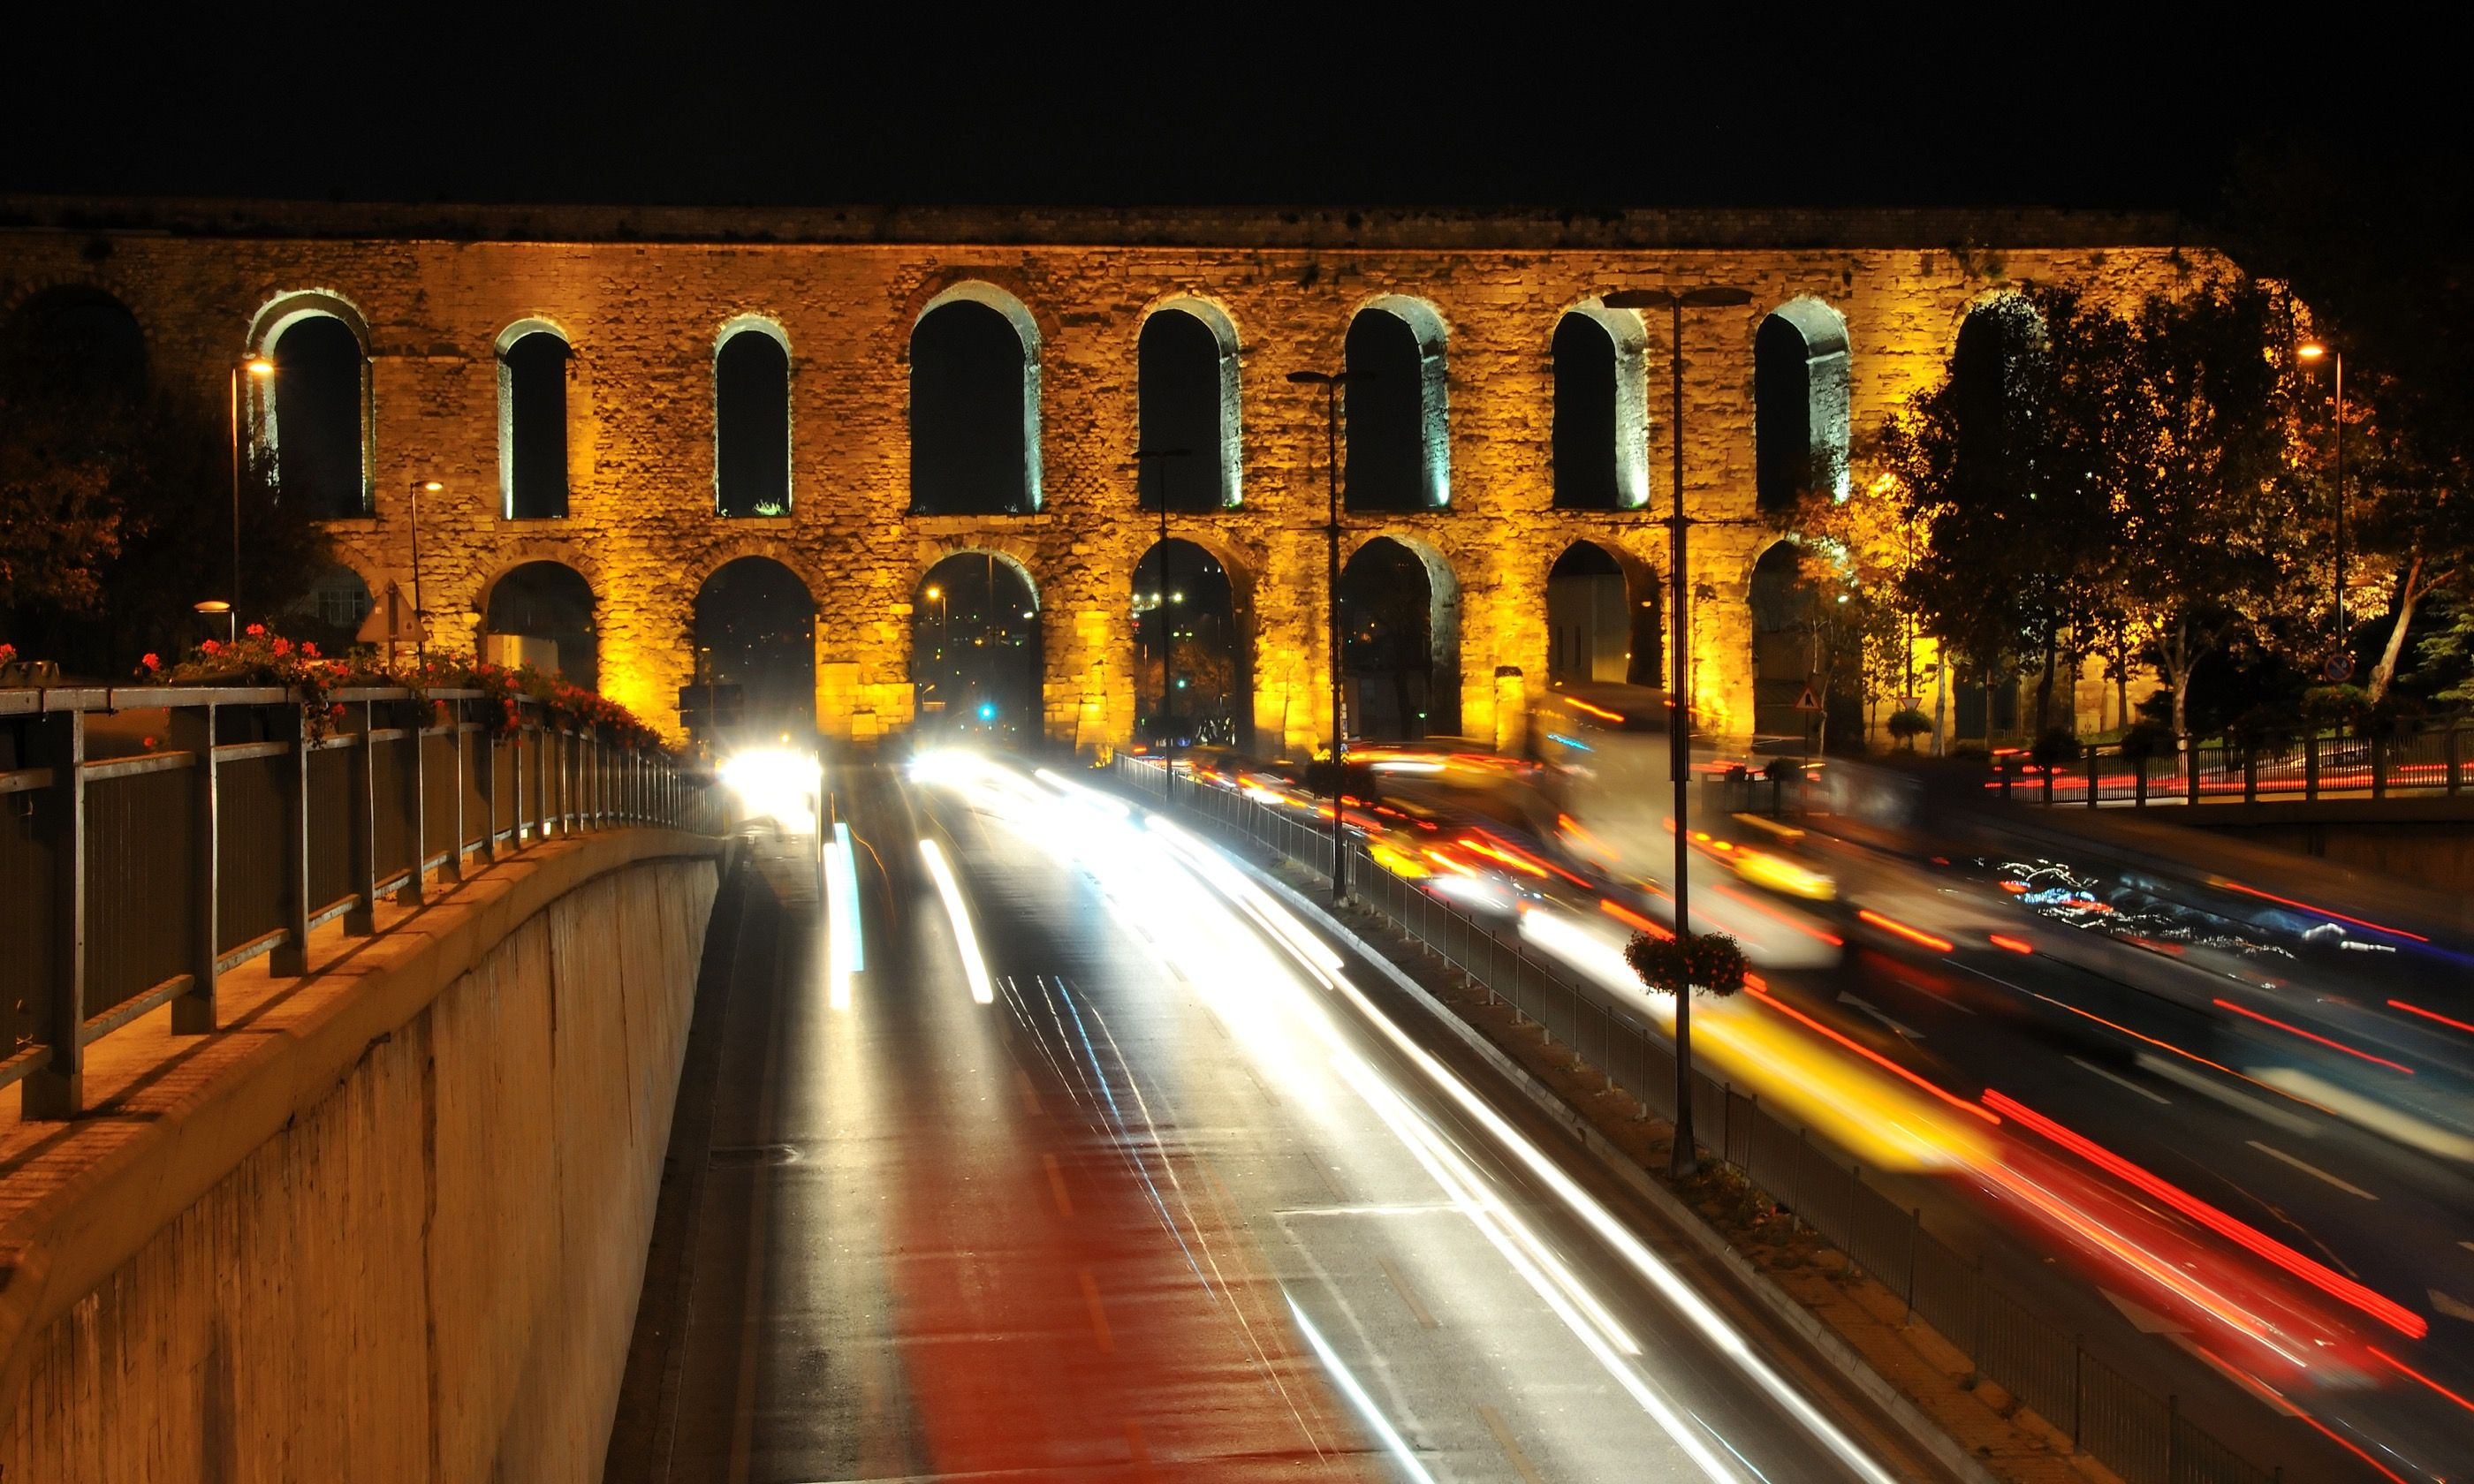 Valens aqueduct at night (Dreamstime)